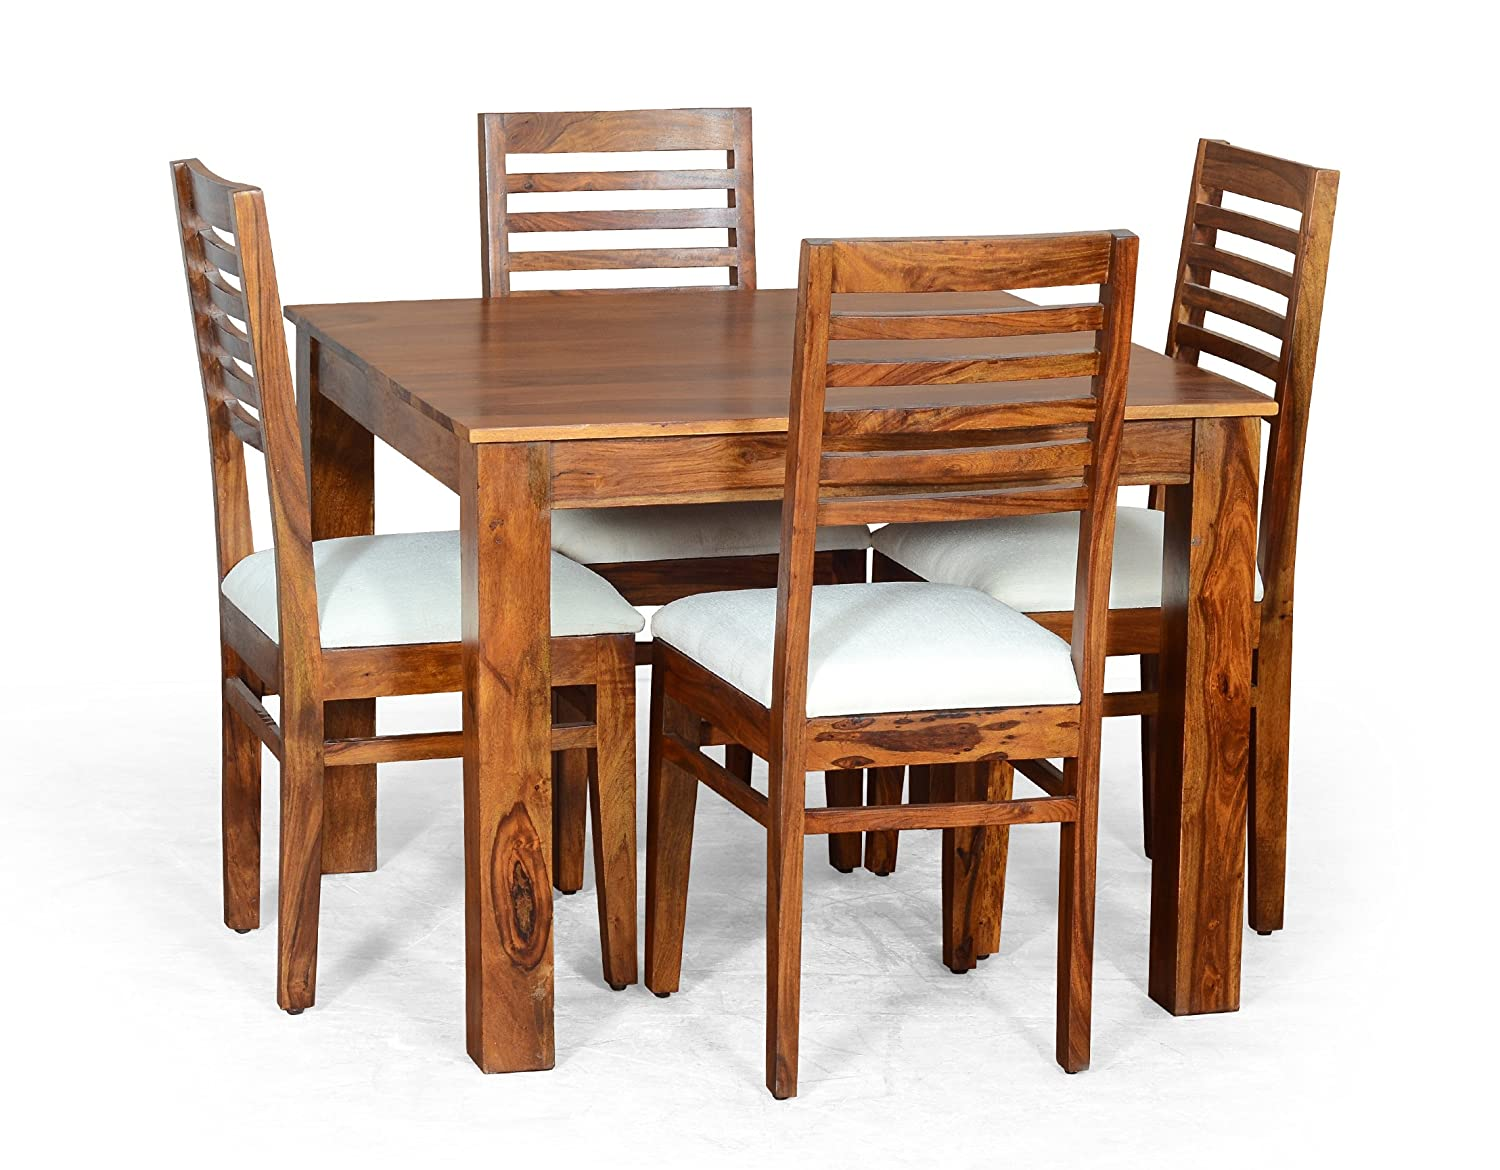 Madera chester four seater solid wood dining table set teak finish brown amazon in home kitchen